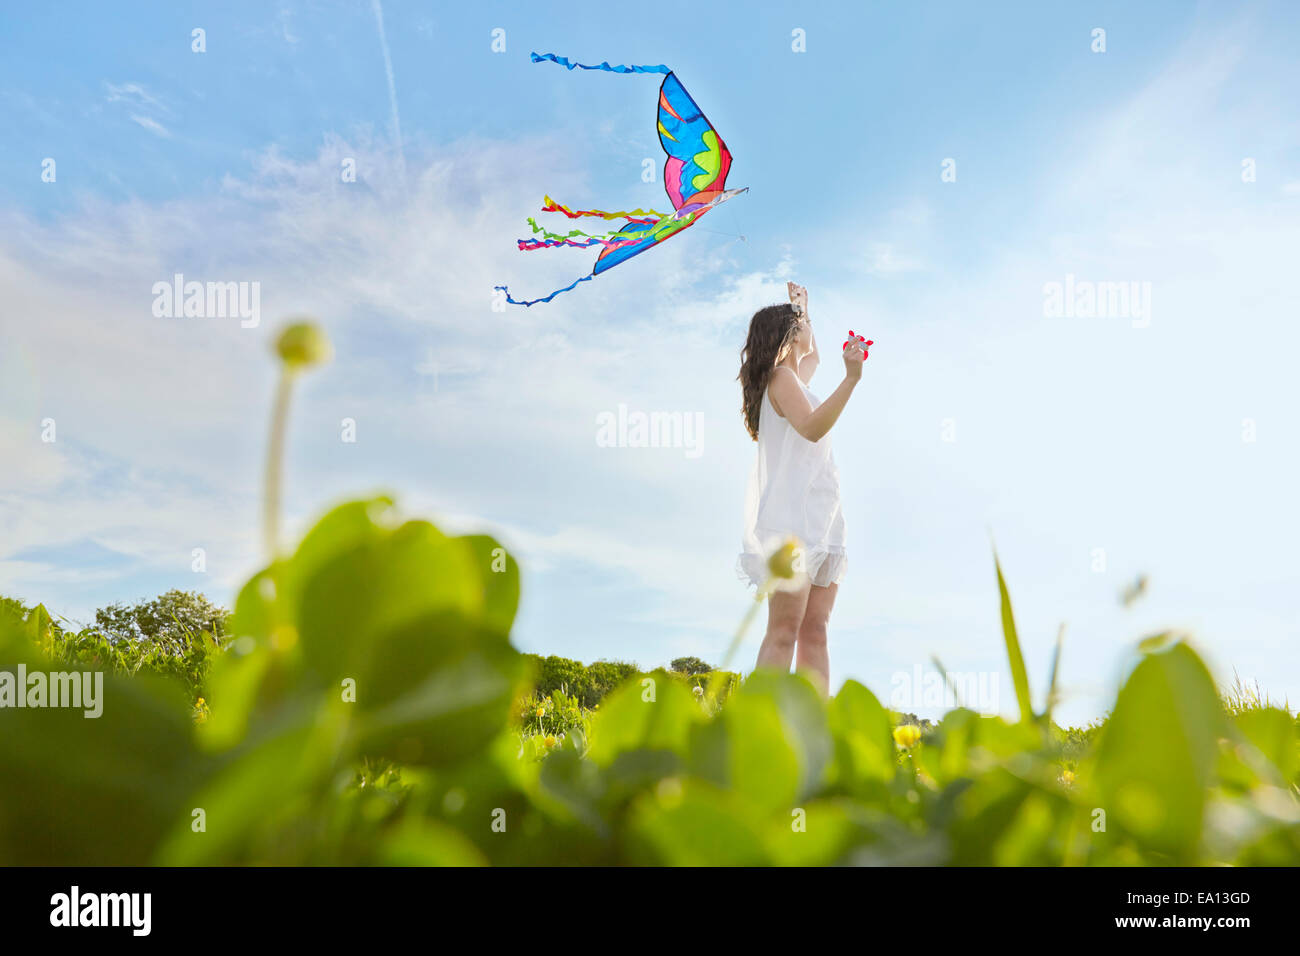 Surface level view of young woman flying a kite in field - Stock Image